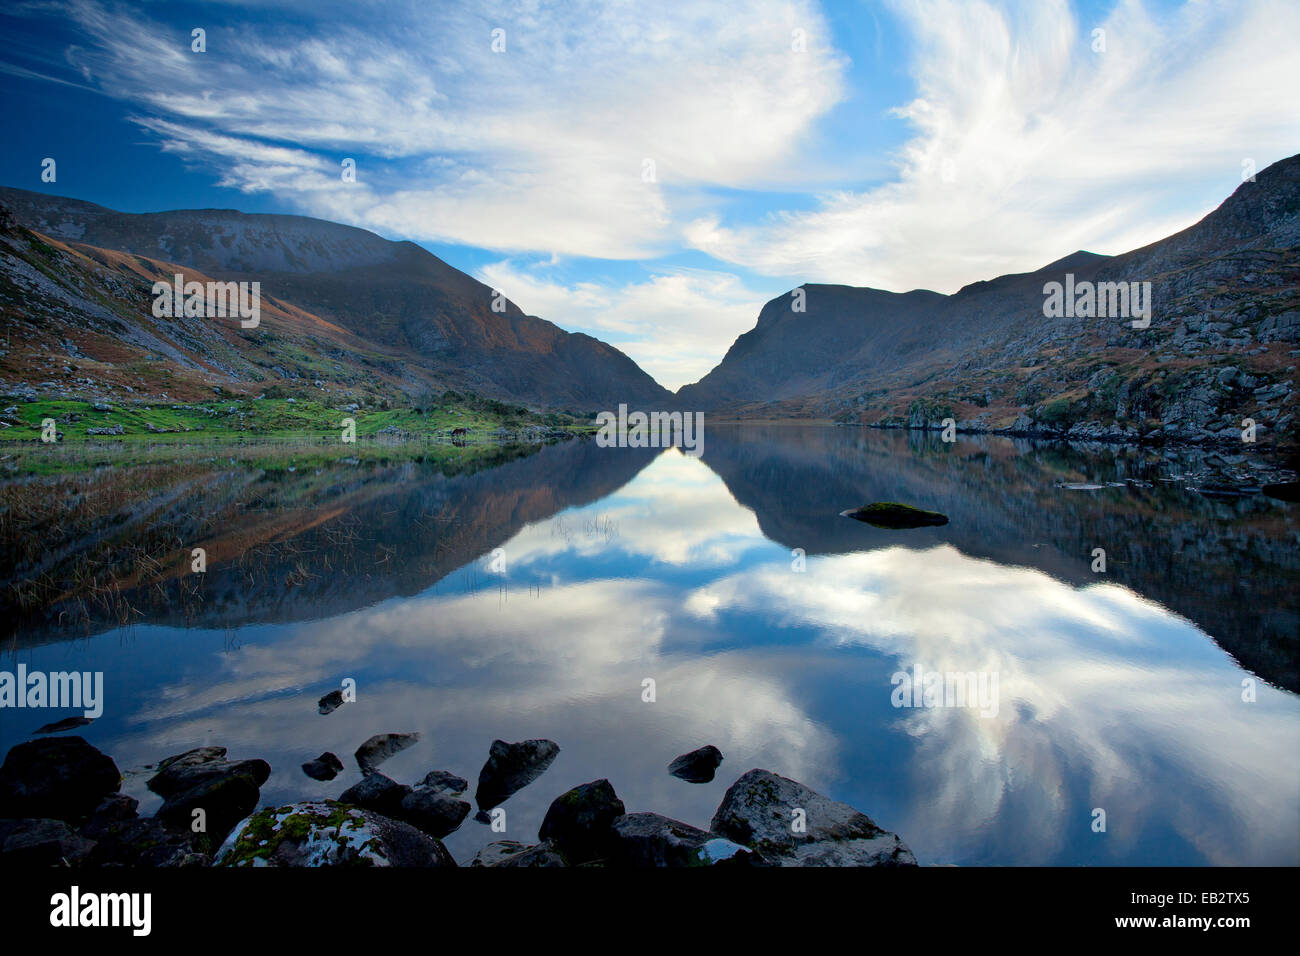 The Macgillycuddys Reeks mountains reflected in Black Lake, Gap of Dunloe, County Kerry, Ireland. - Stock Image